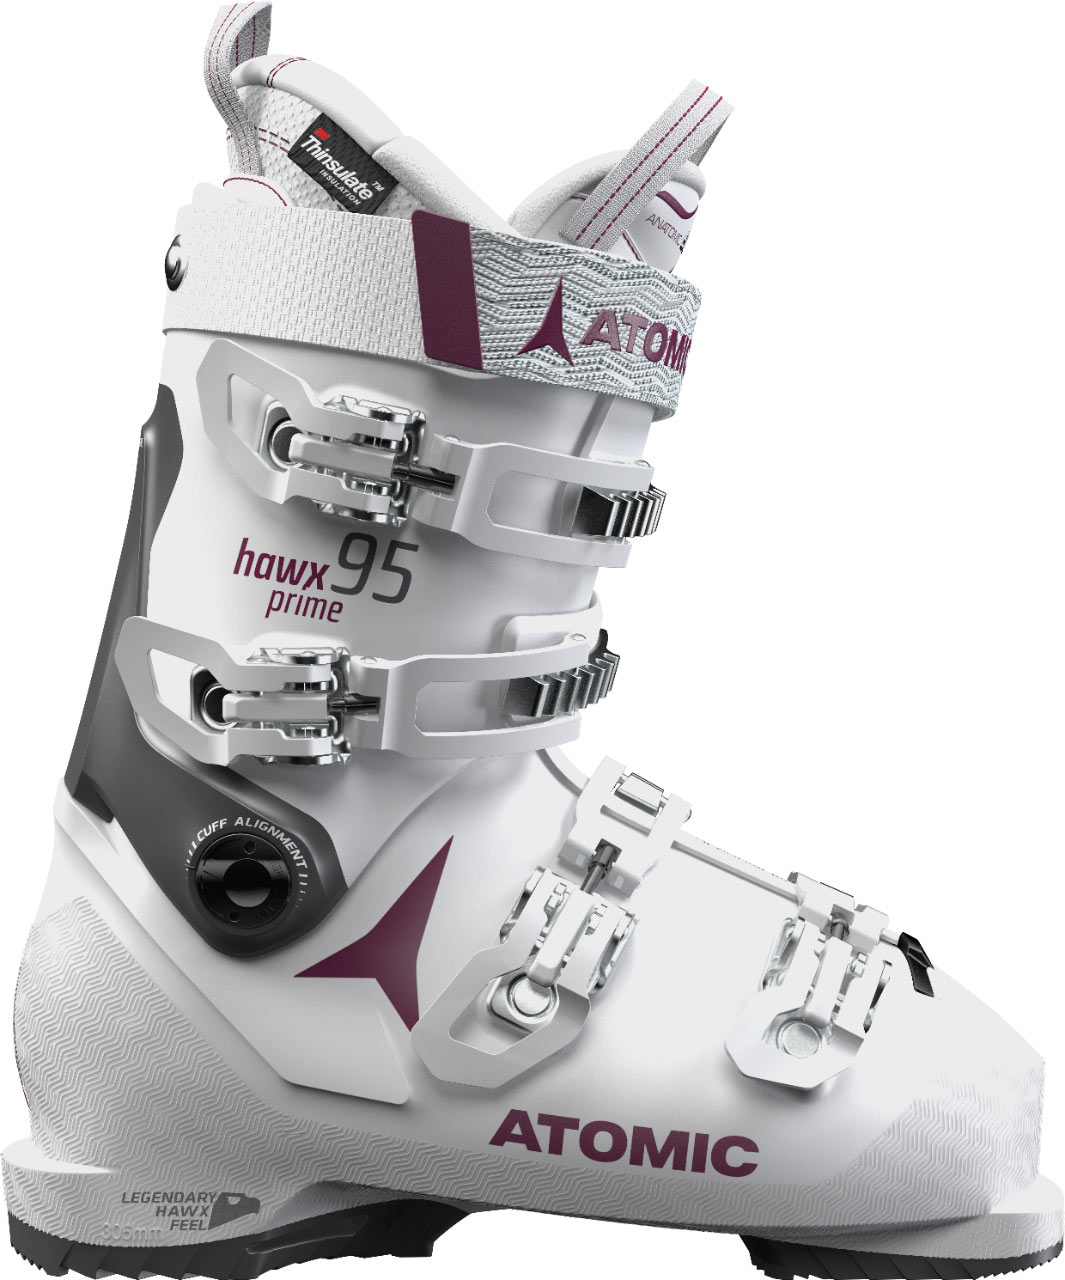 Atomic Hawx Prime 95 W (2019) Ski Boot Woman › INTERSPORT Rent Val ... 367e4f9aa